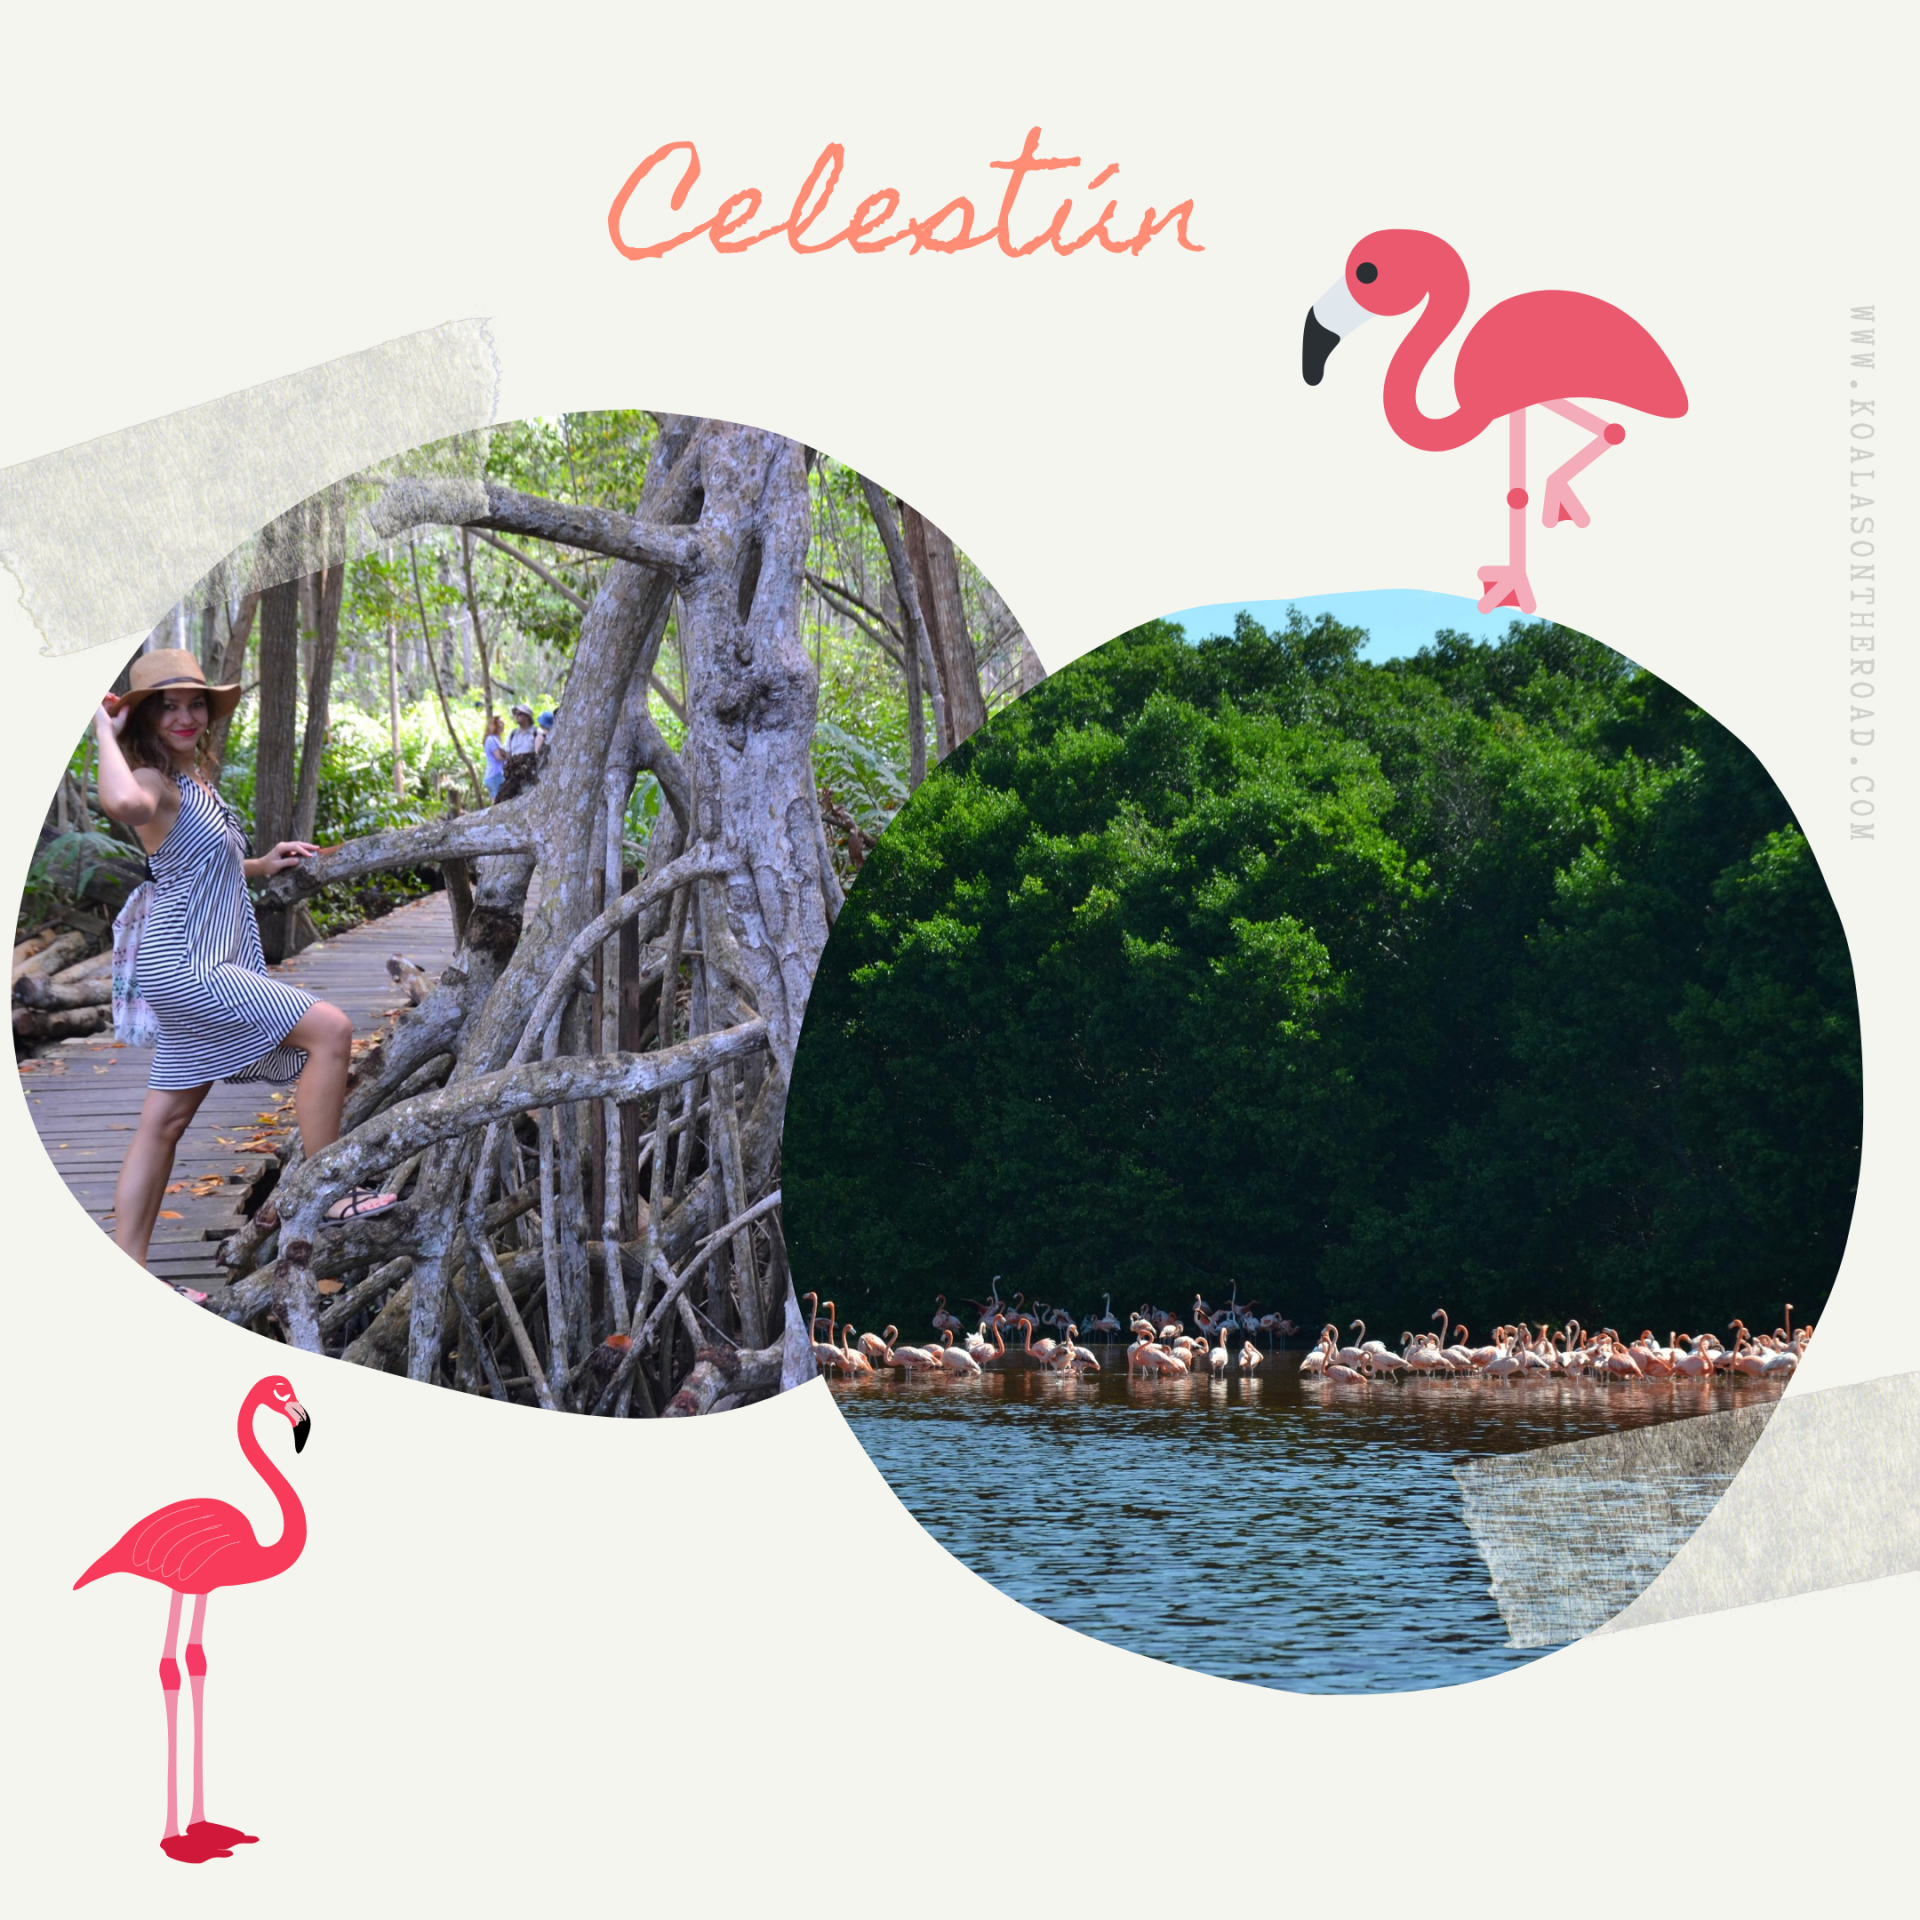 The best places to visit in Yucatan - koalas on the road - Celestun